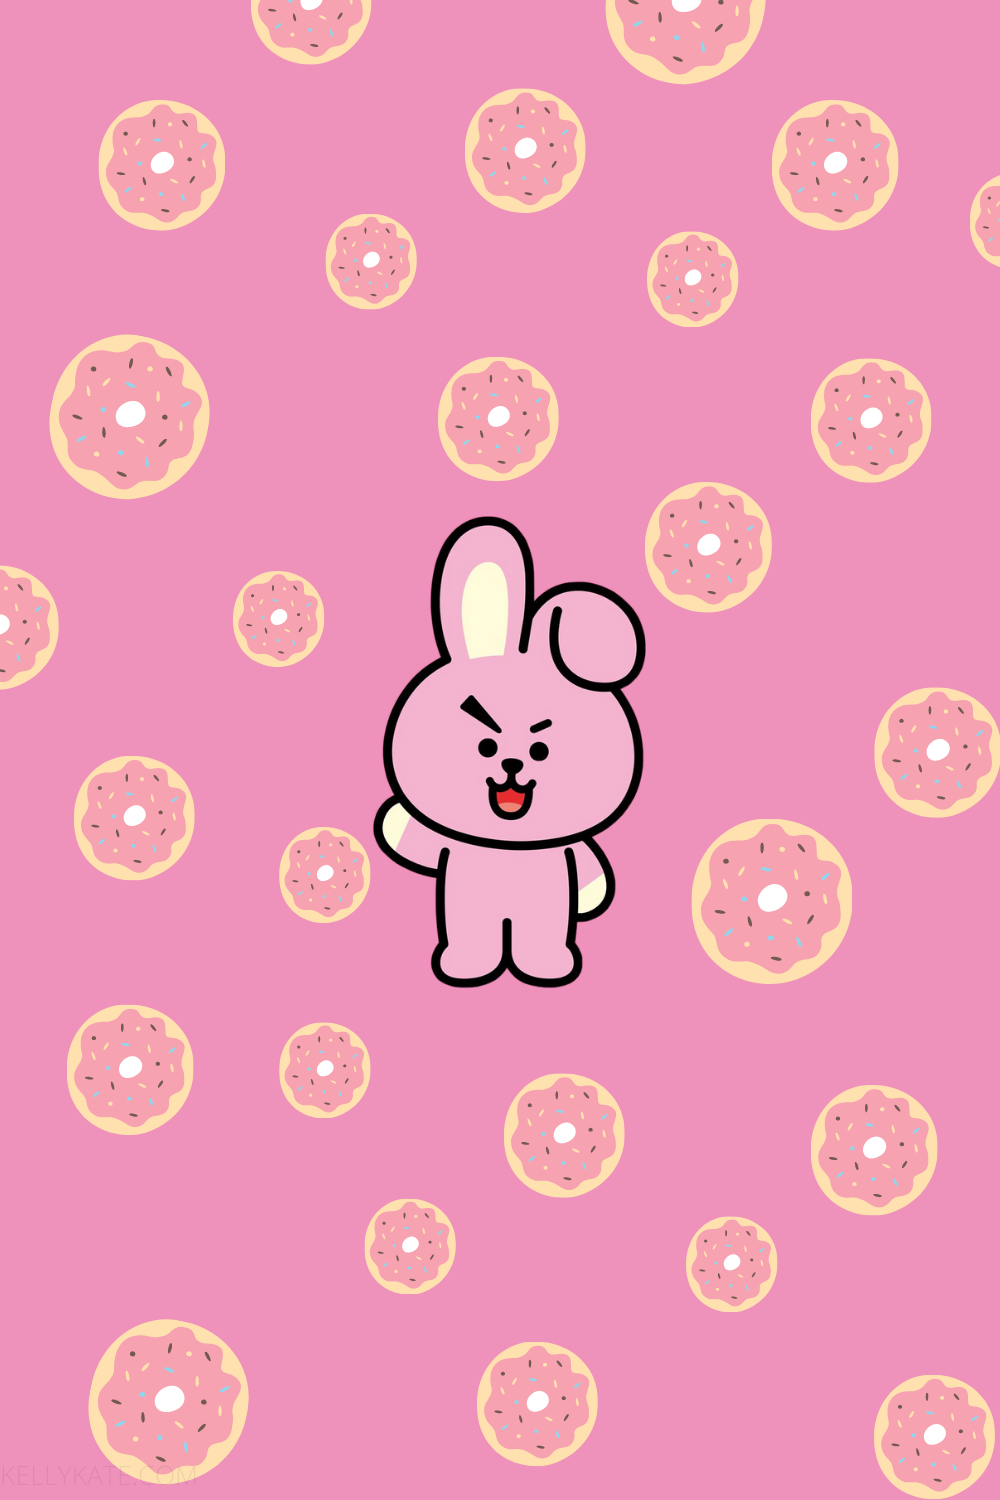 #bt21 #cookie #wallpaperbt21 #jungkook